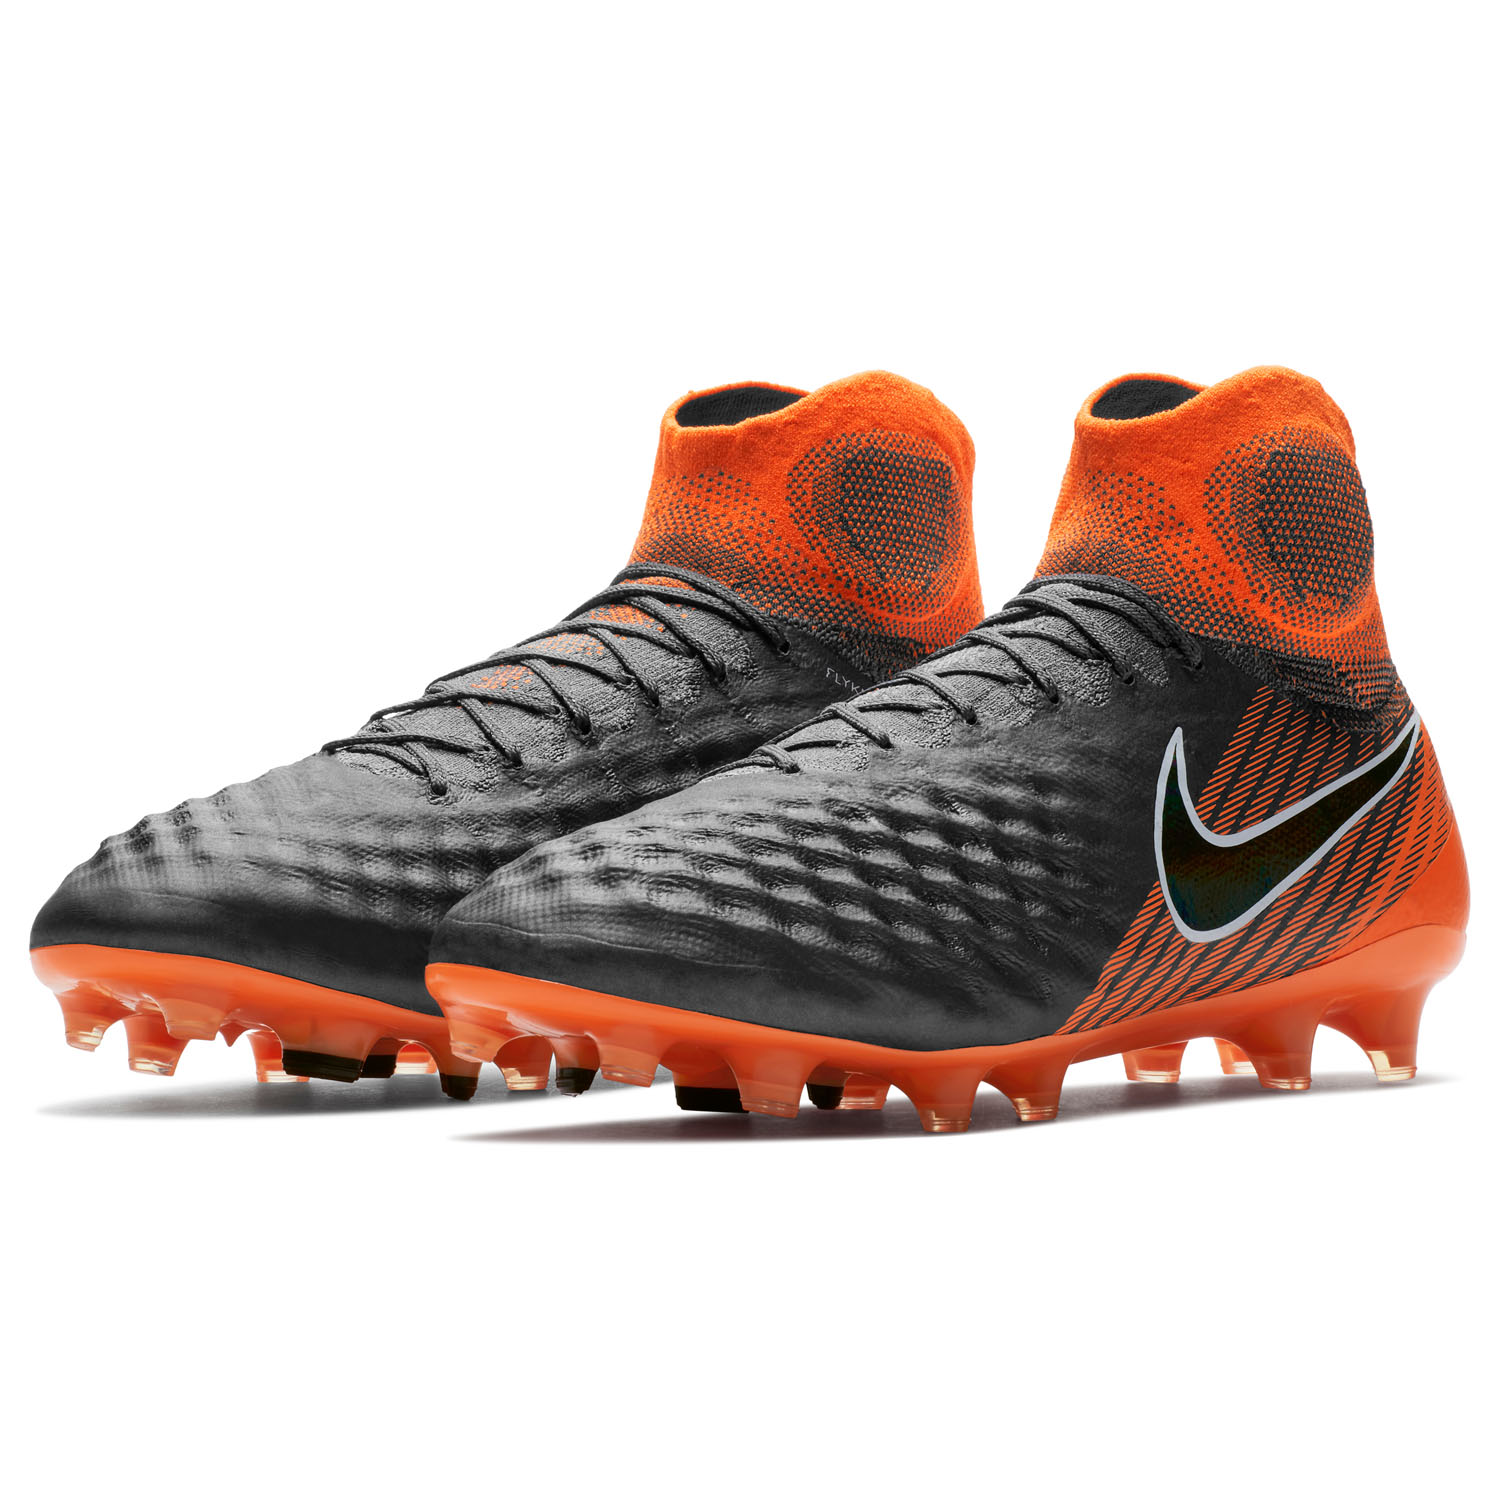 8dbf4dfba44b Nike Obra 2 Elite Dynamic Fit FG Soccer Cleat – Dark Grey/Black/Orange